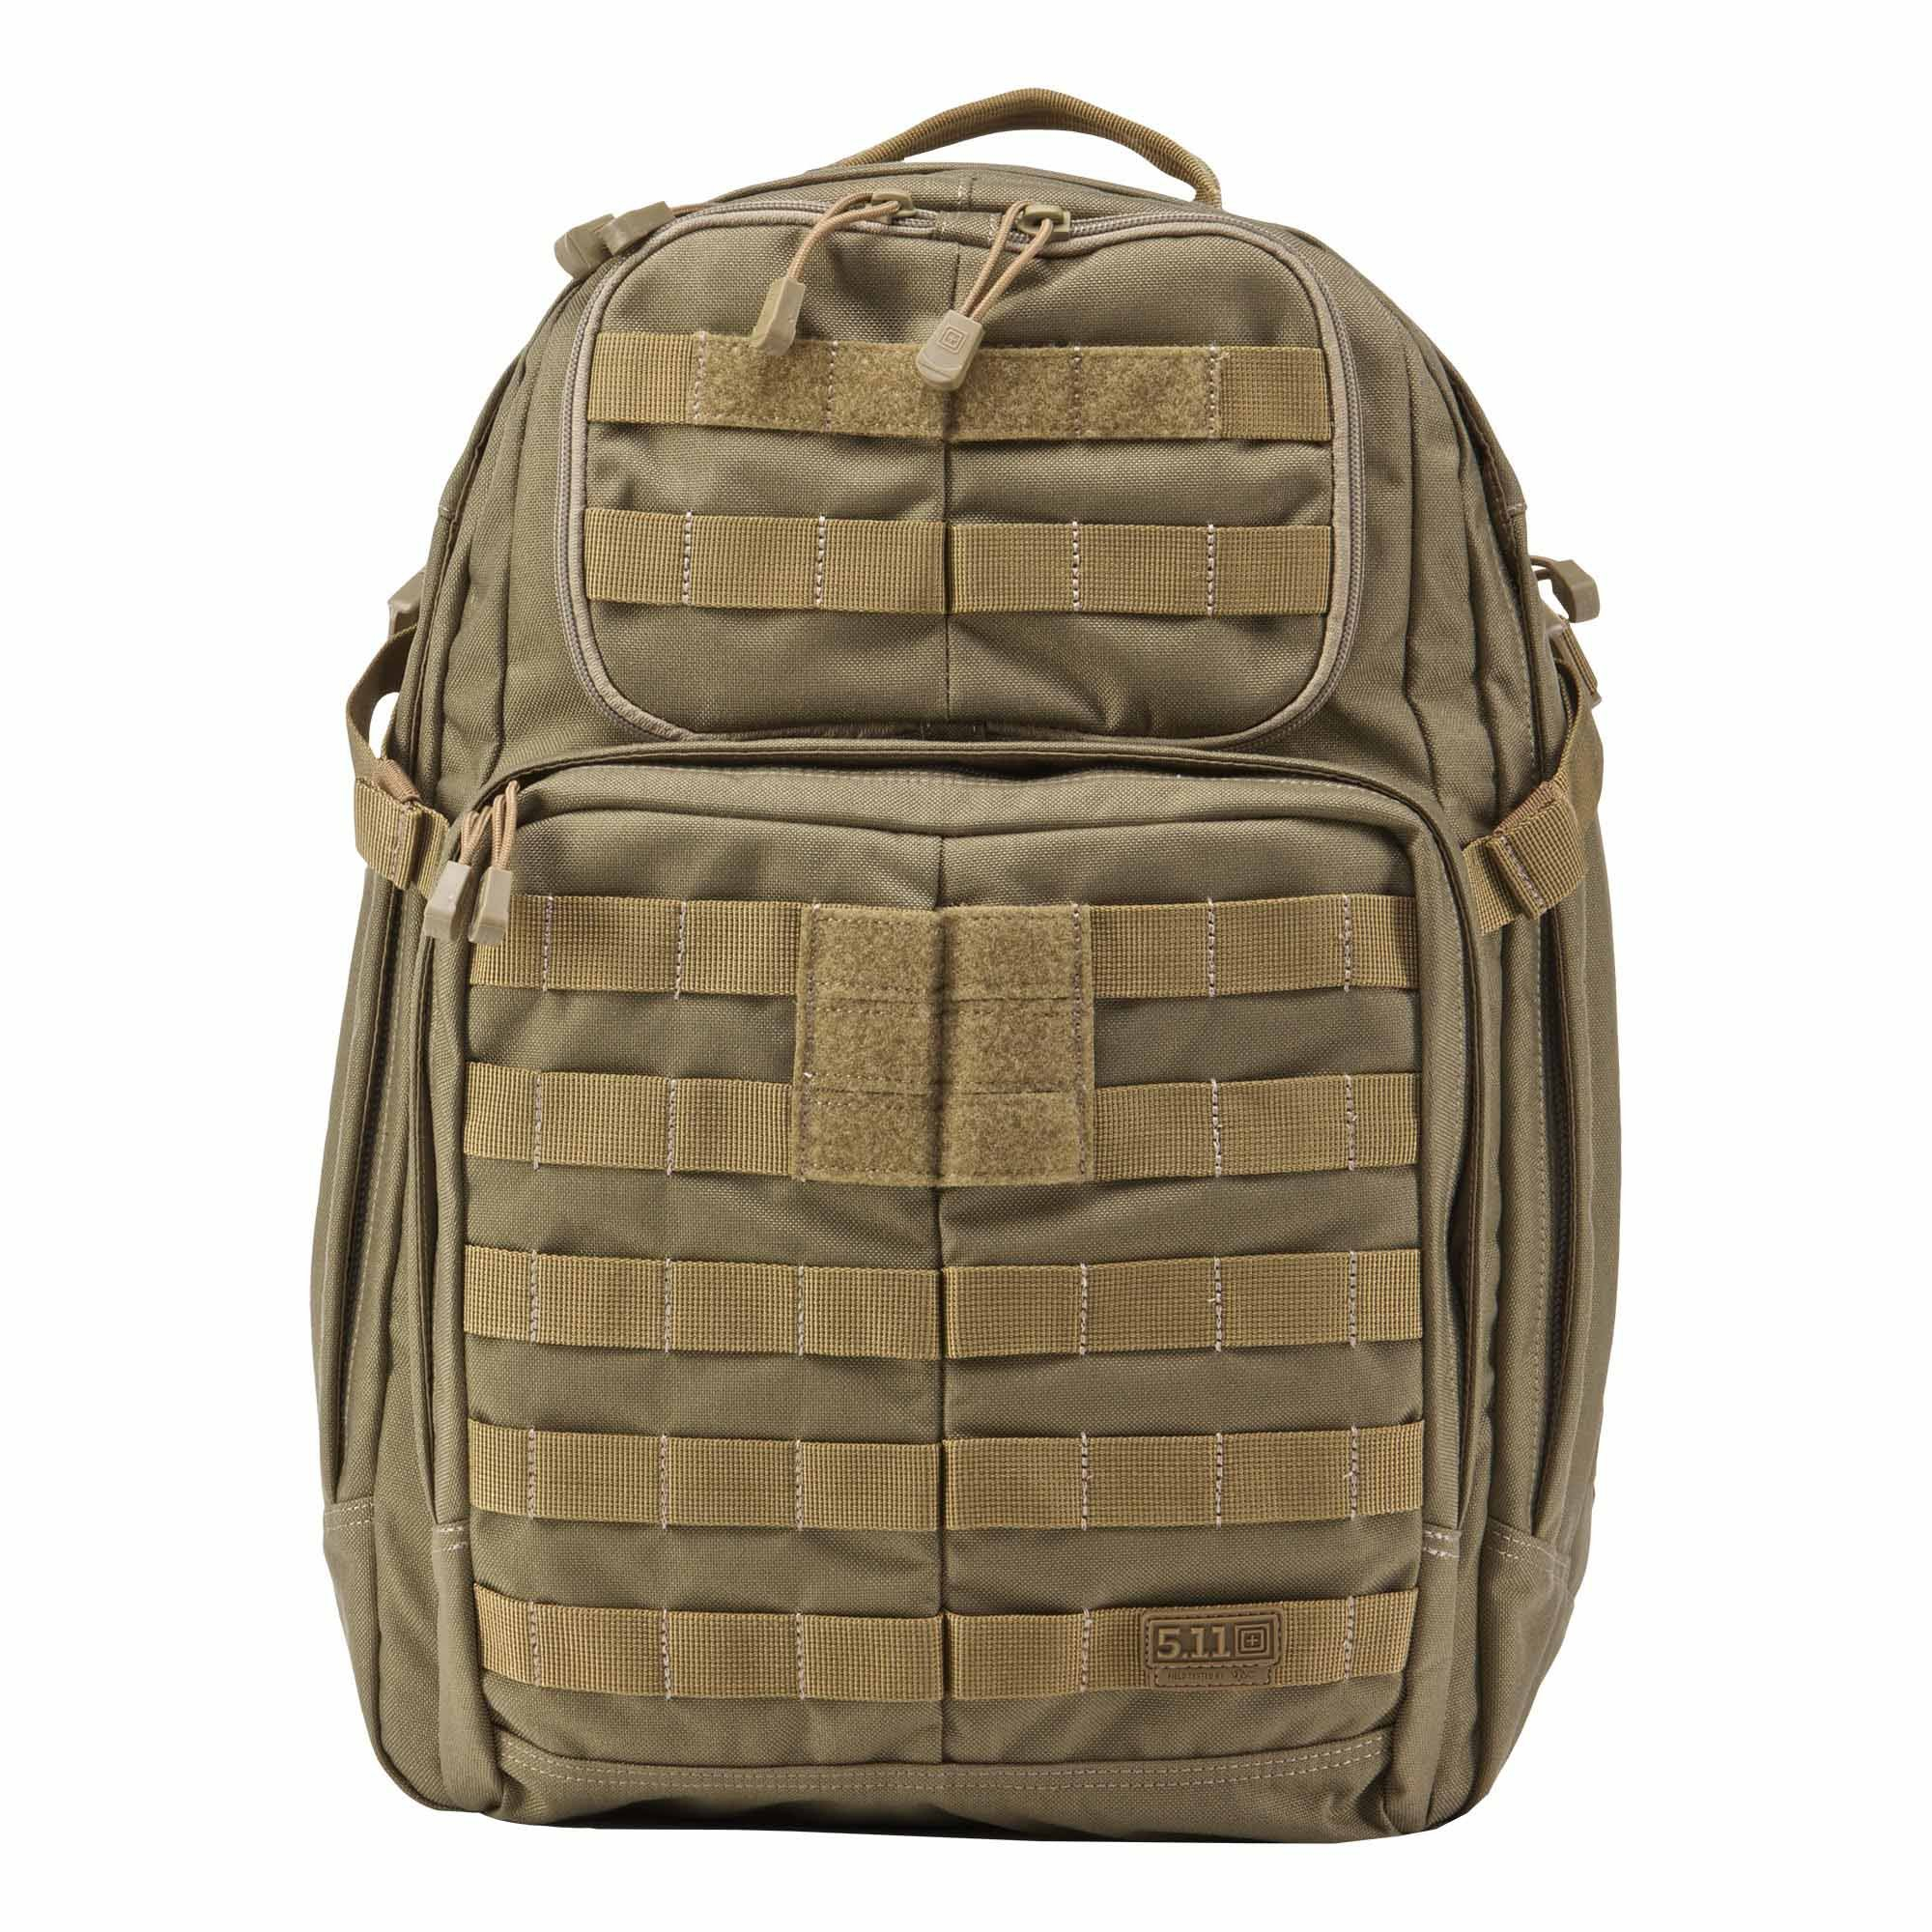 5.11 RUSH24 Tactical Backpack, Medium, Style 58601, Sandstone by 5.11